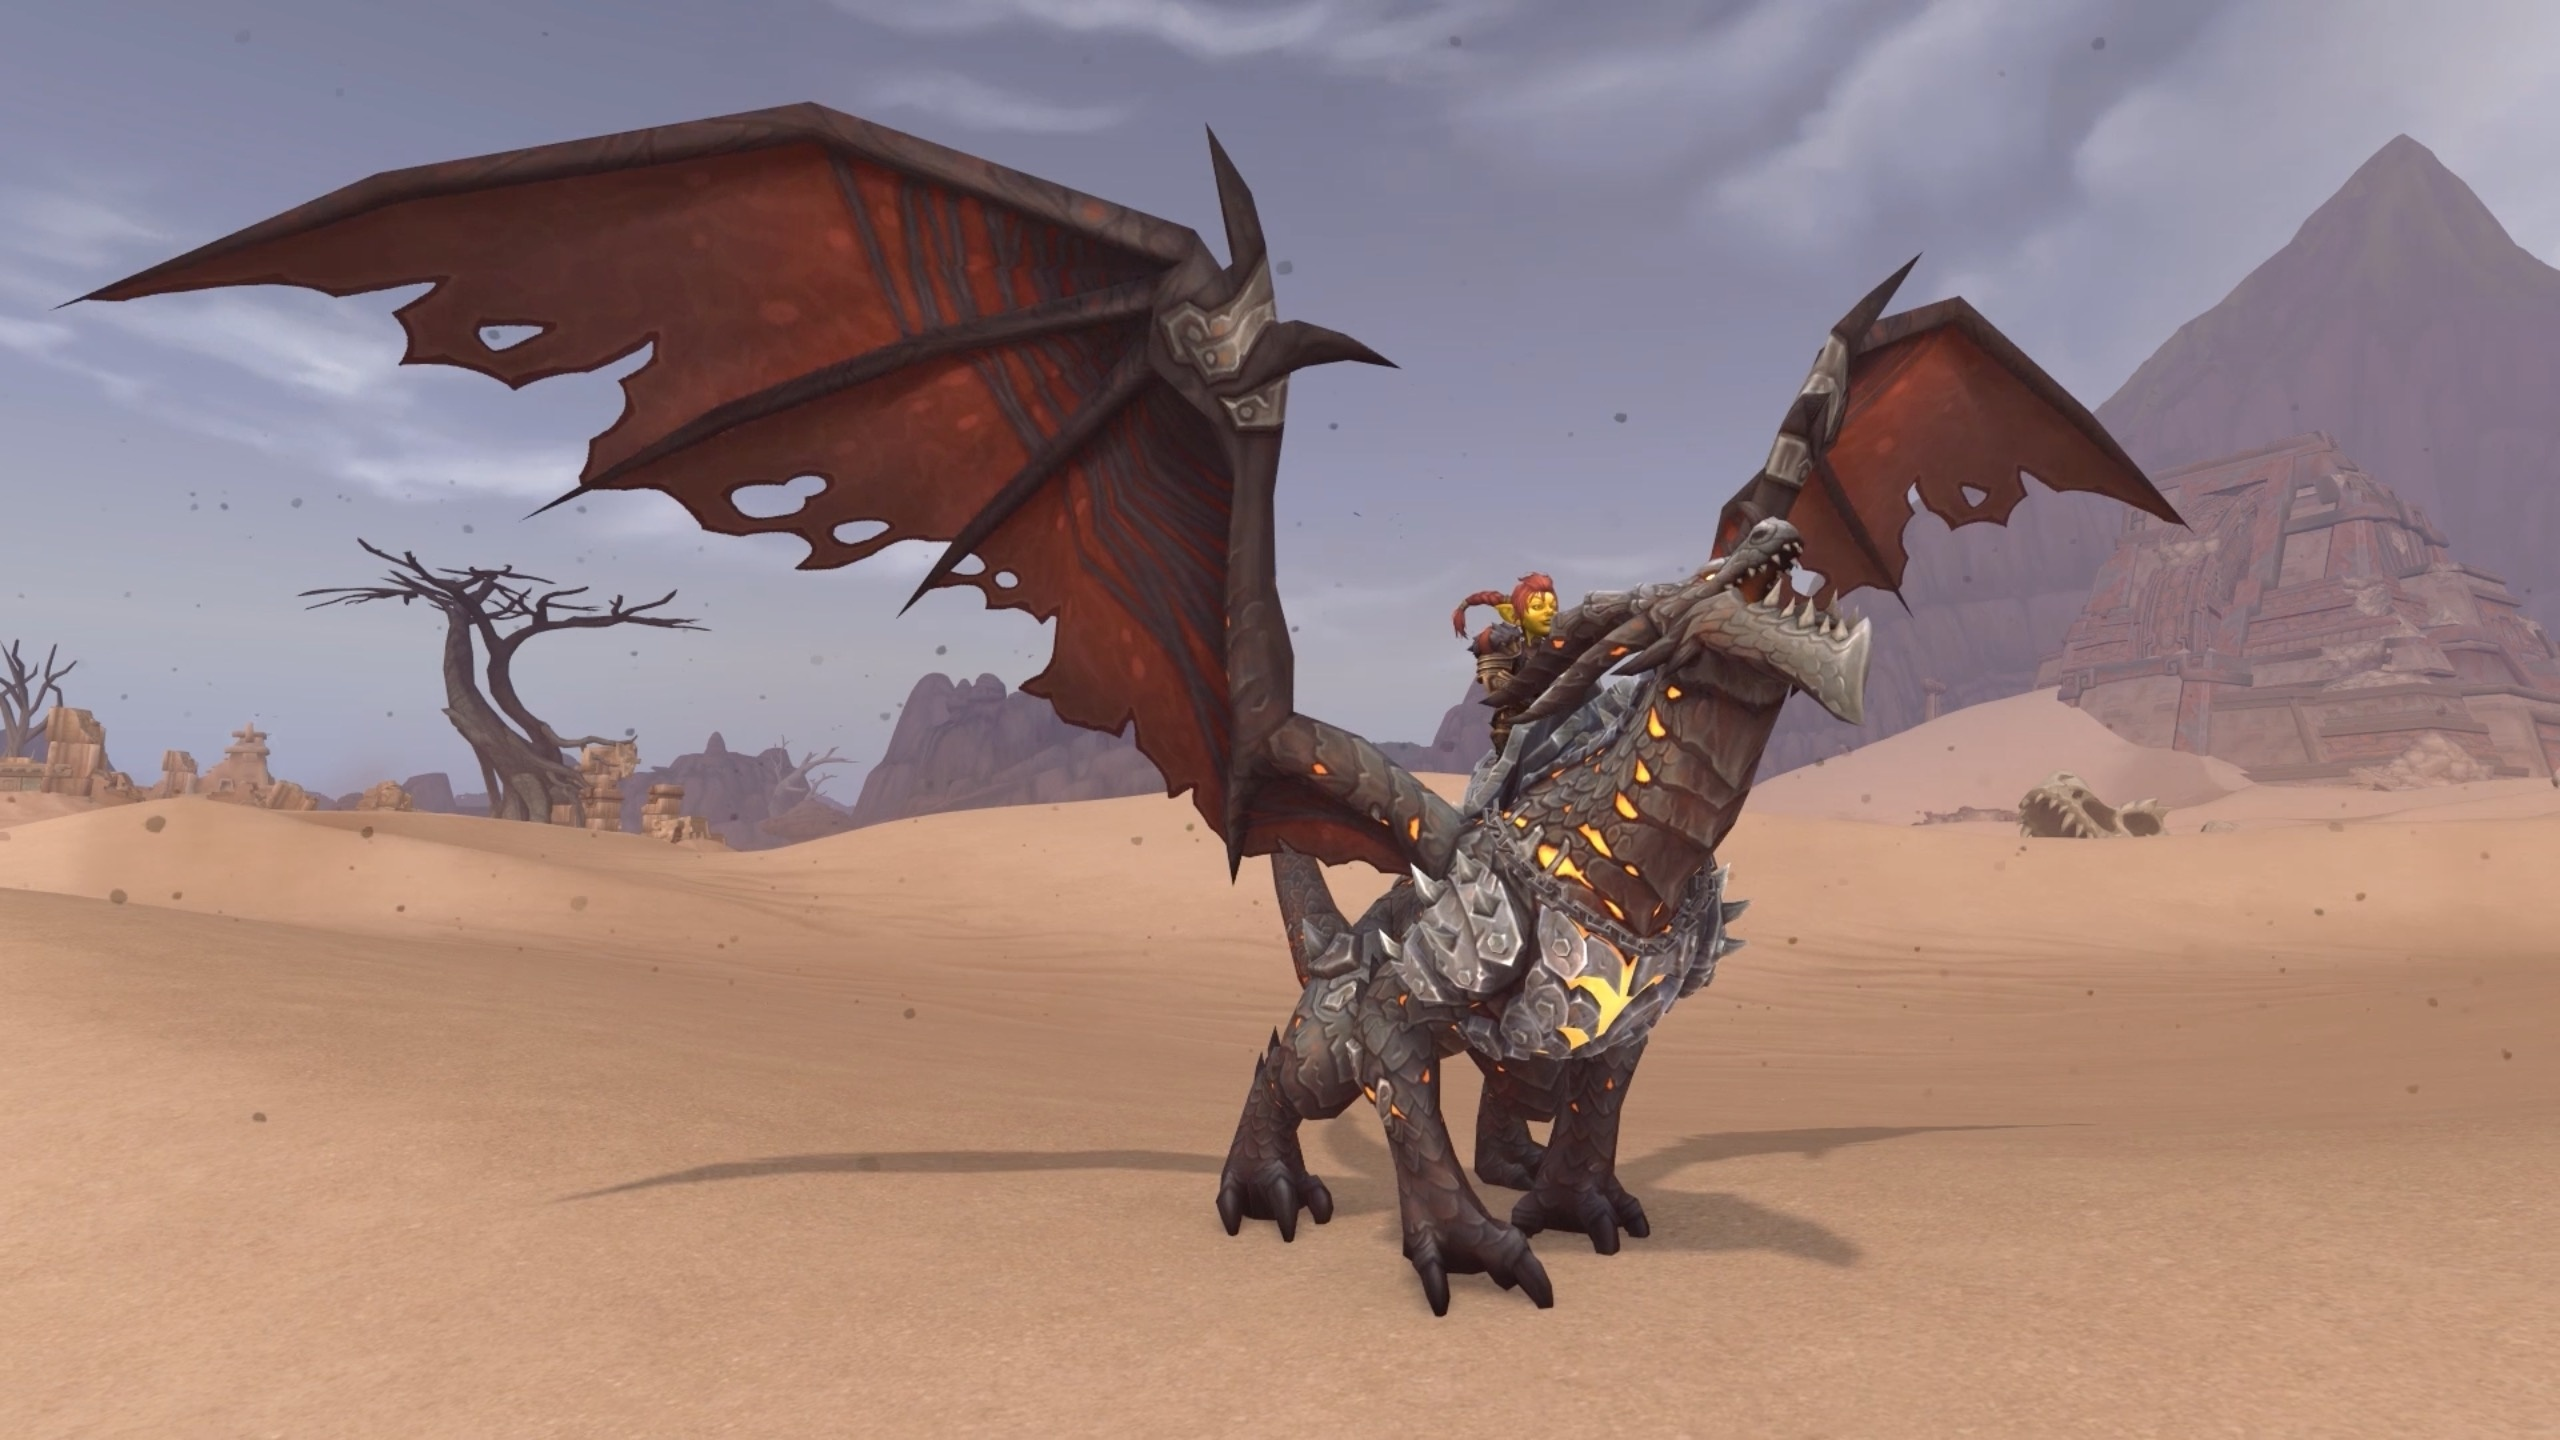 Warcrafts 15th Anniversary Celebration Ragnaros Statue Obsidian 2560x1440